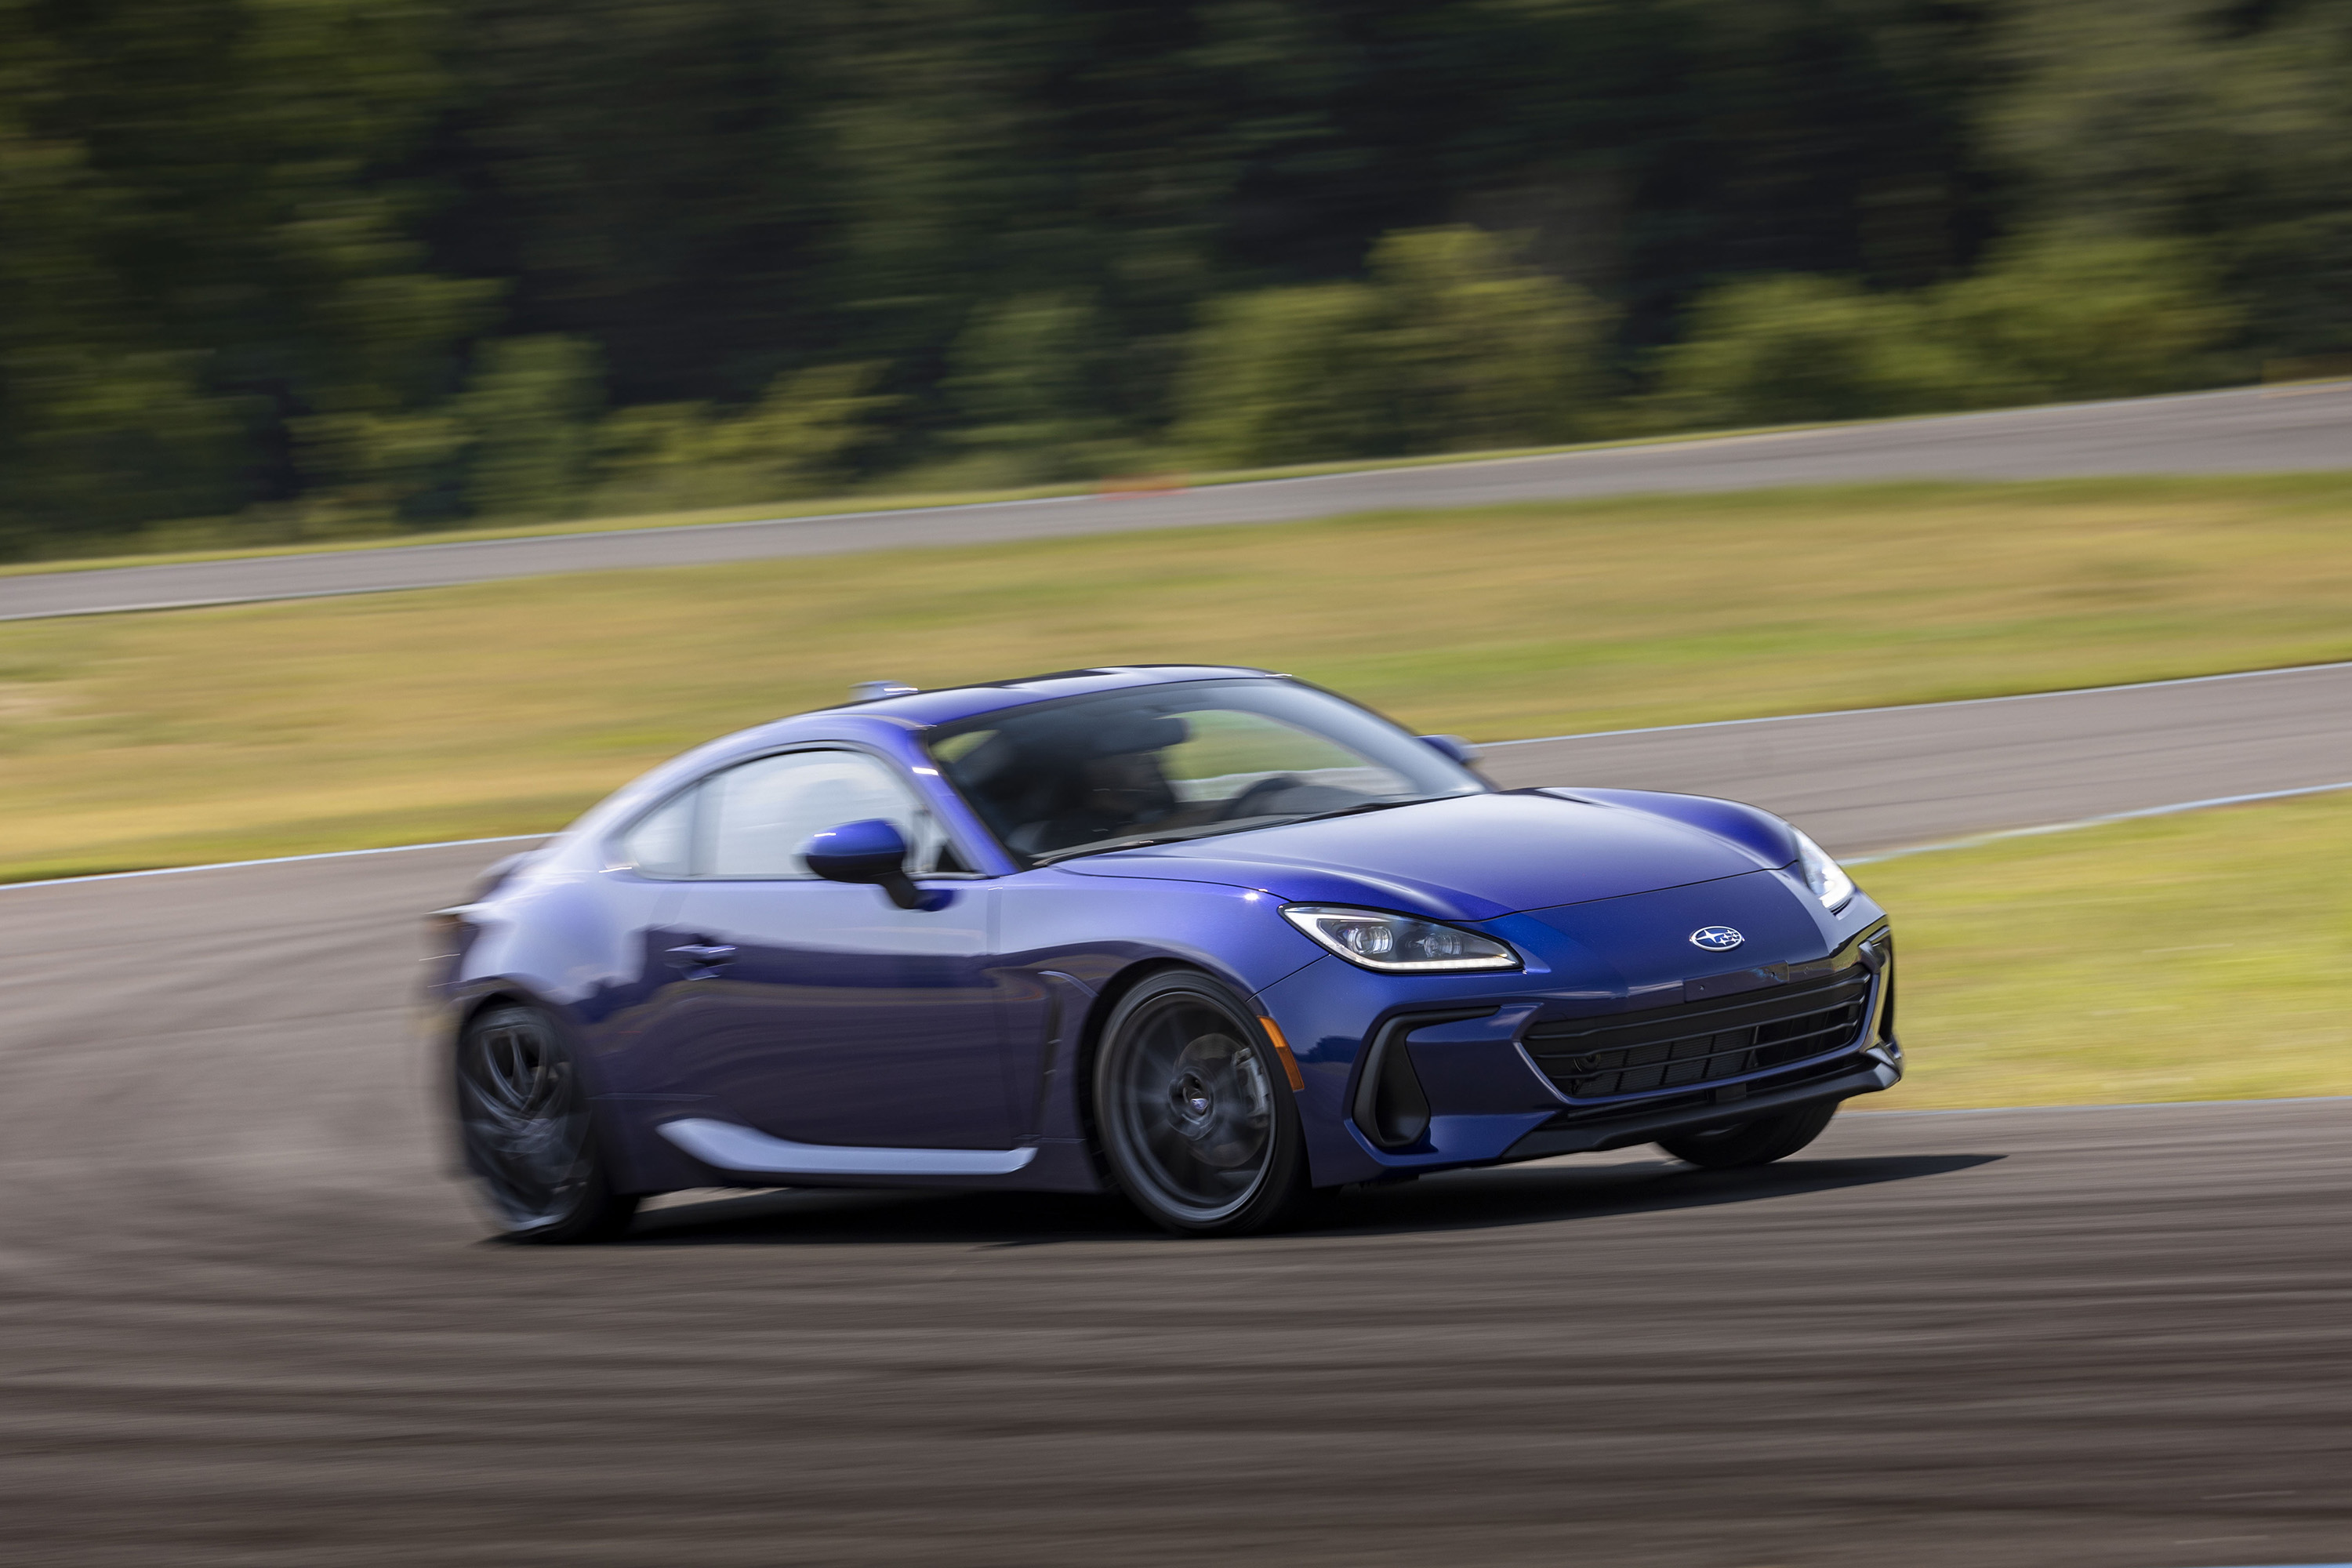 2022 Subaru BRZ first drive review: Three cheers for cheap thrills     - Roadshow